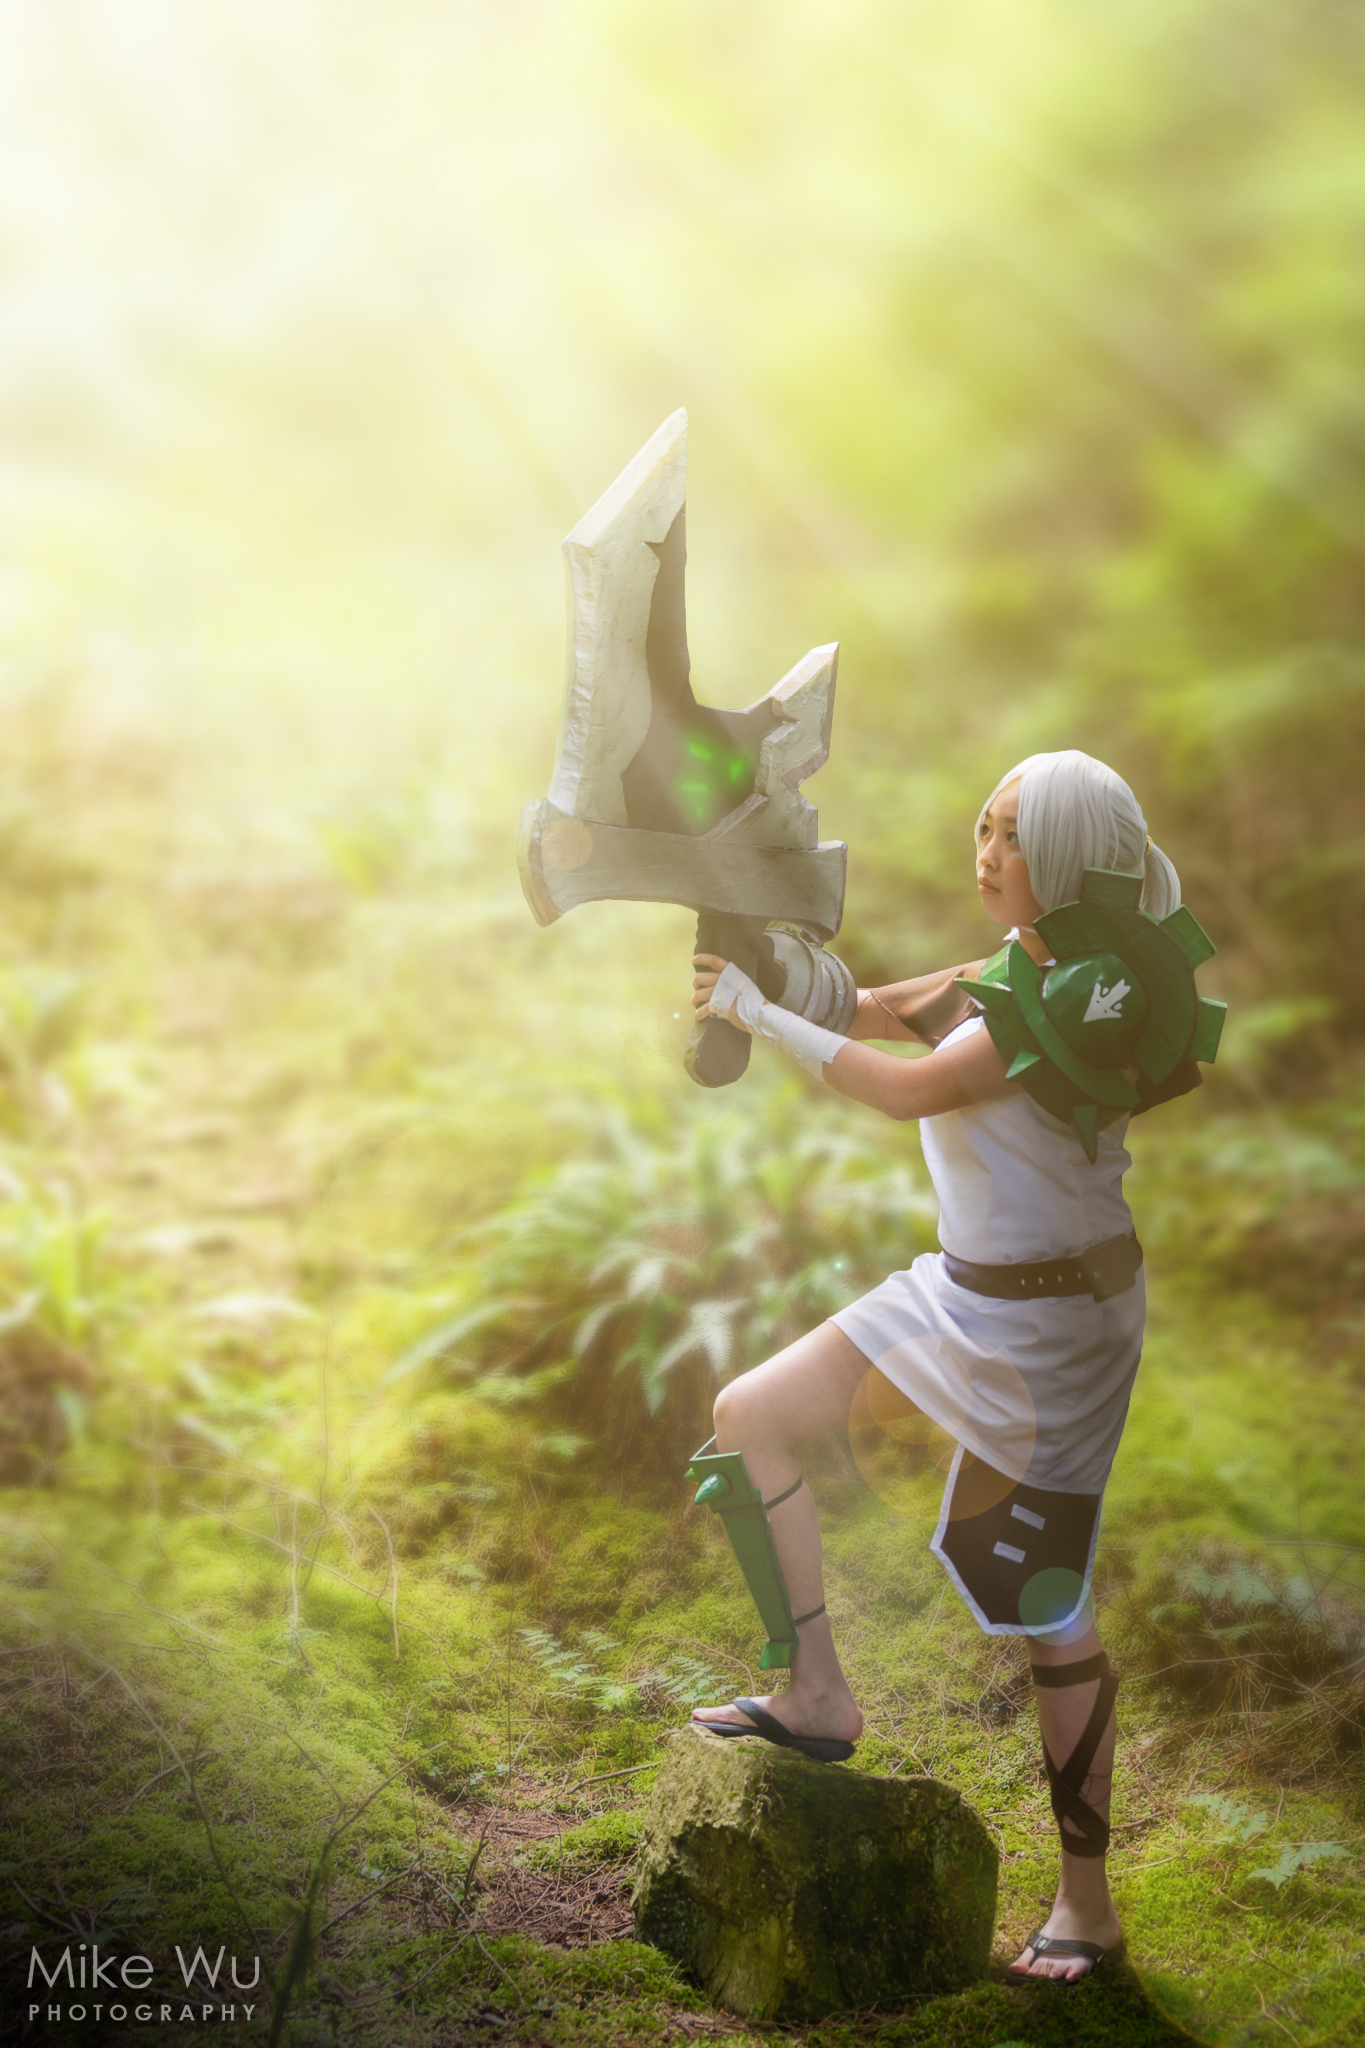 cosplay, riven, league of legends, sword, forest, game, computer, competitive, compete, costume